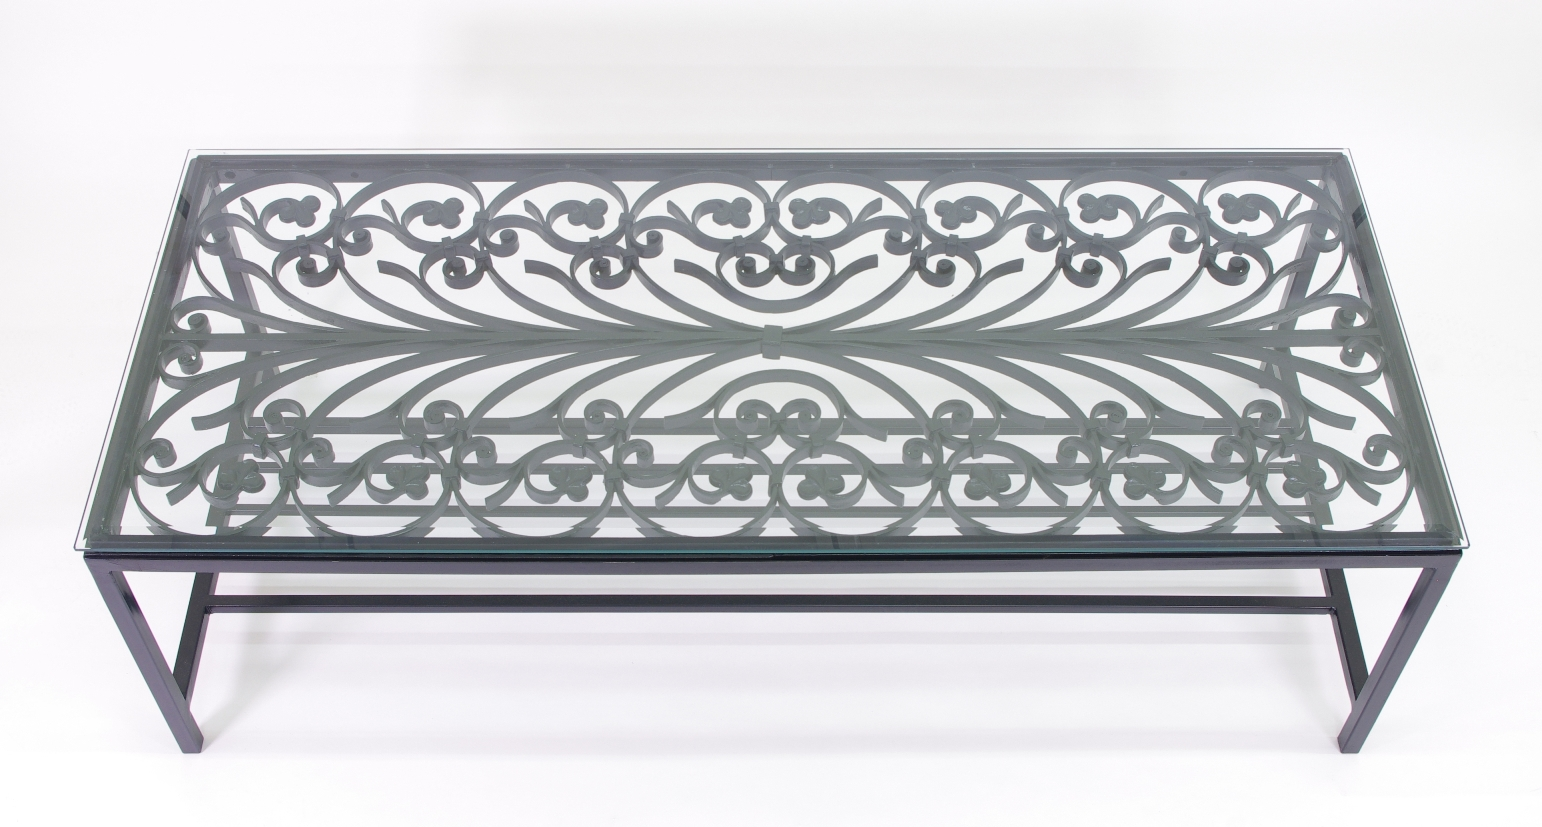 View 7: French Wrought Iron Window Guard Mounted as a Coffee Table, Mid 19th c.